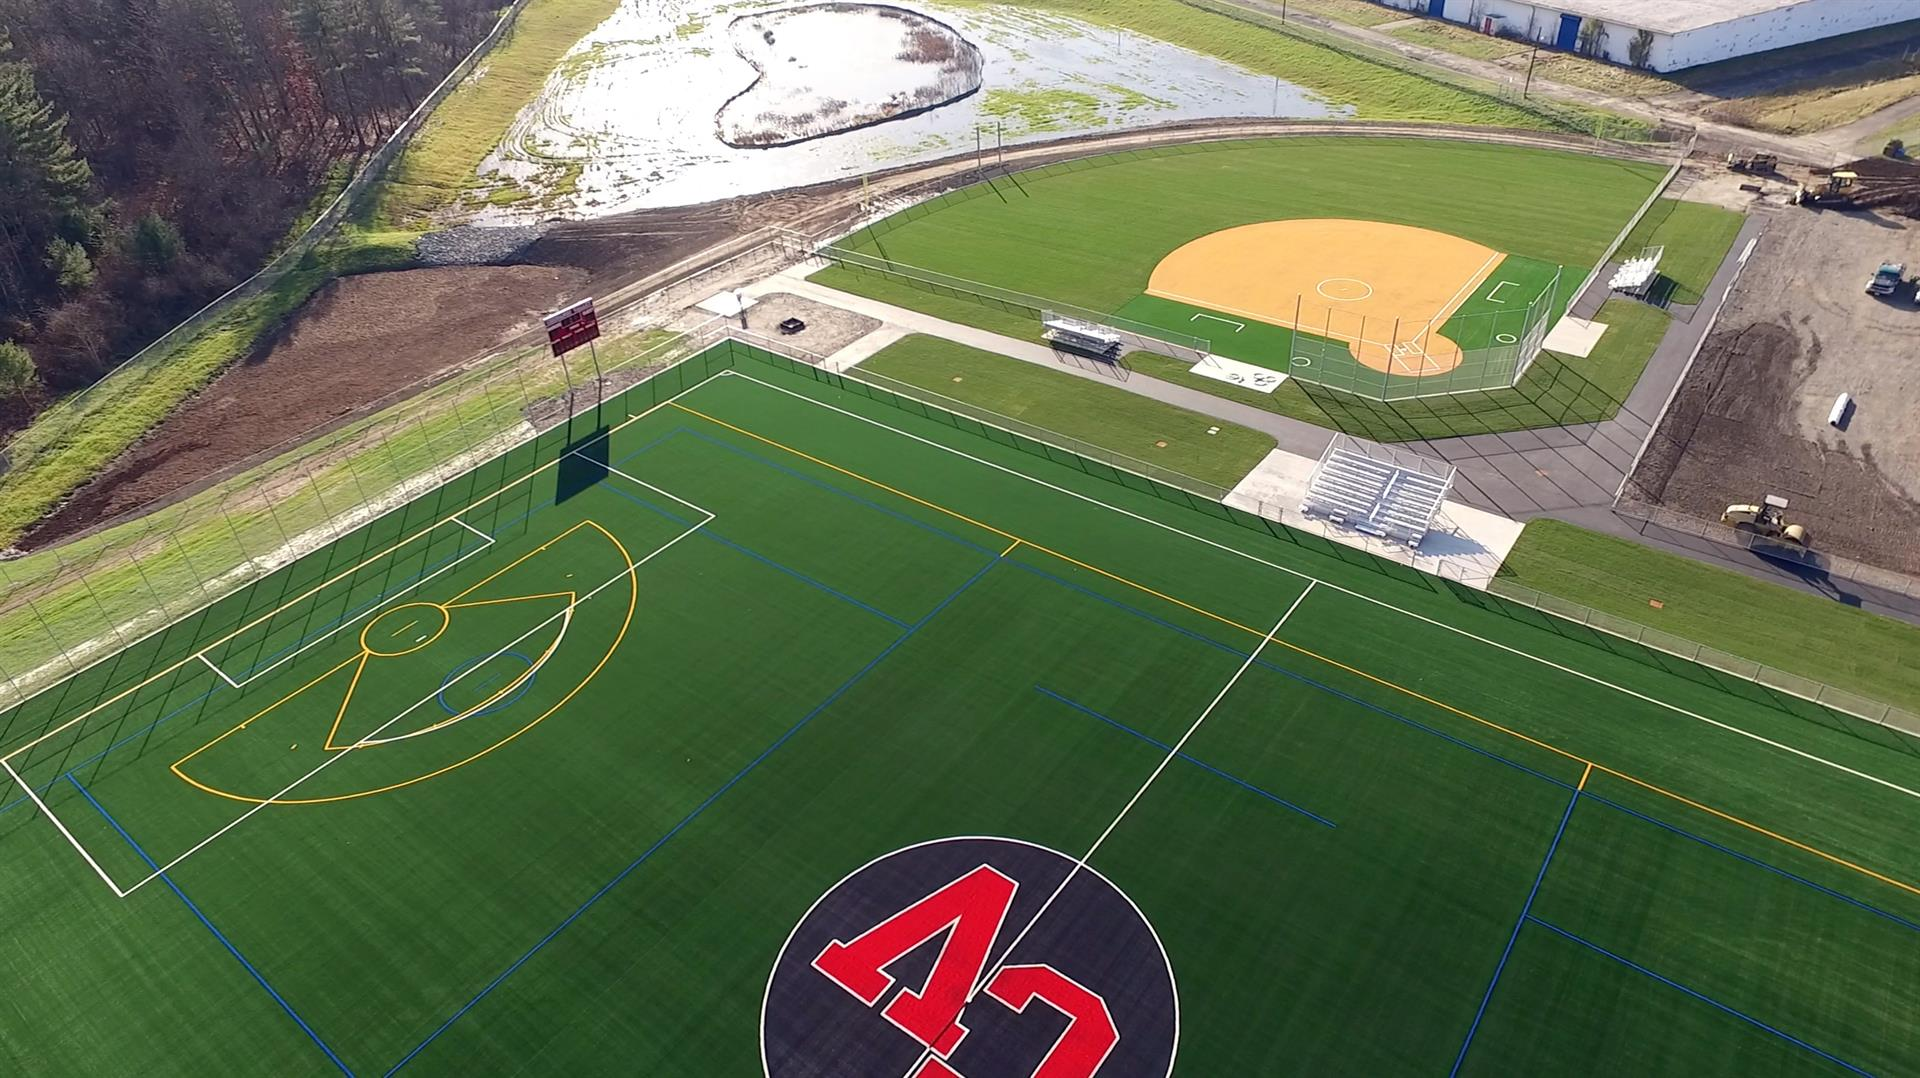 New turf athletic field